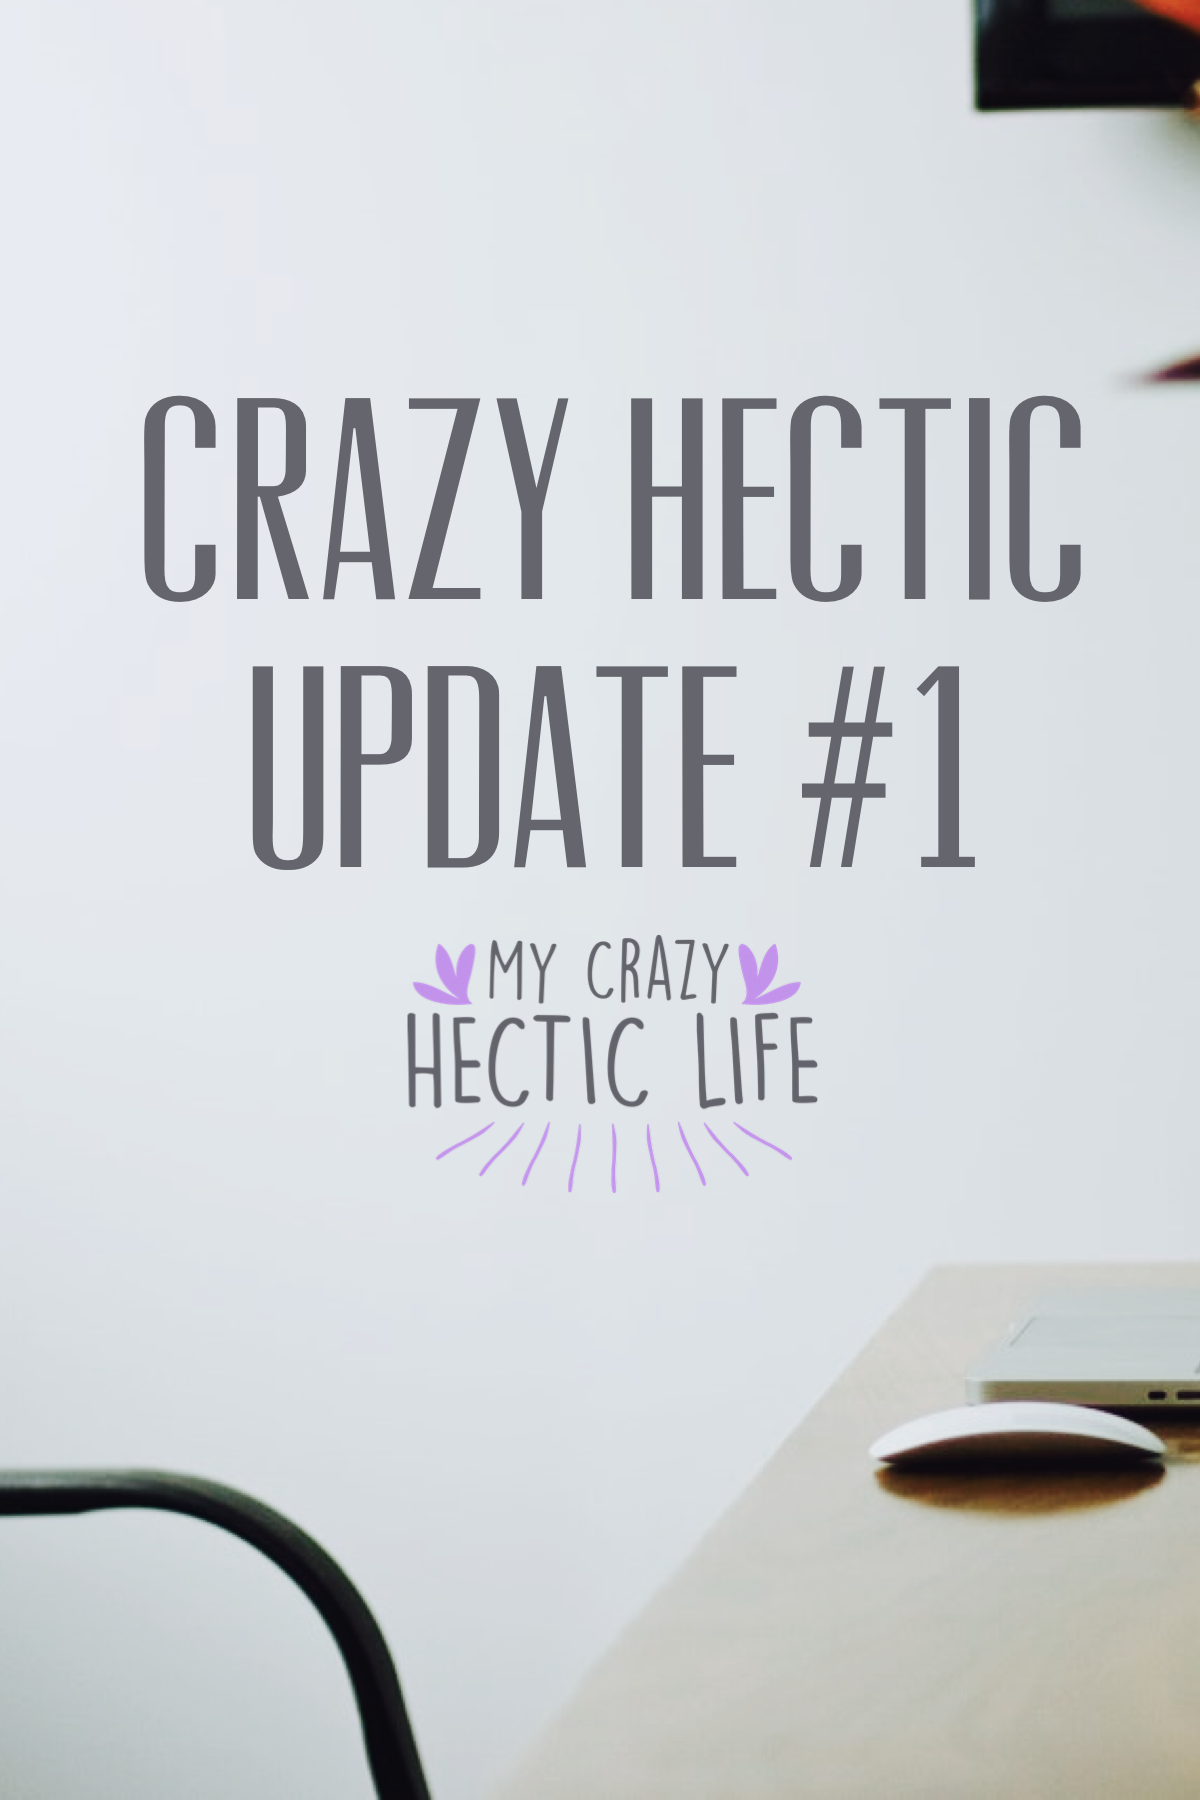 Crazy Hectic Update #1